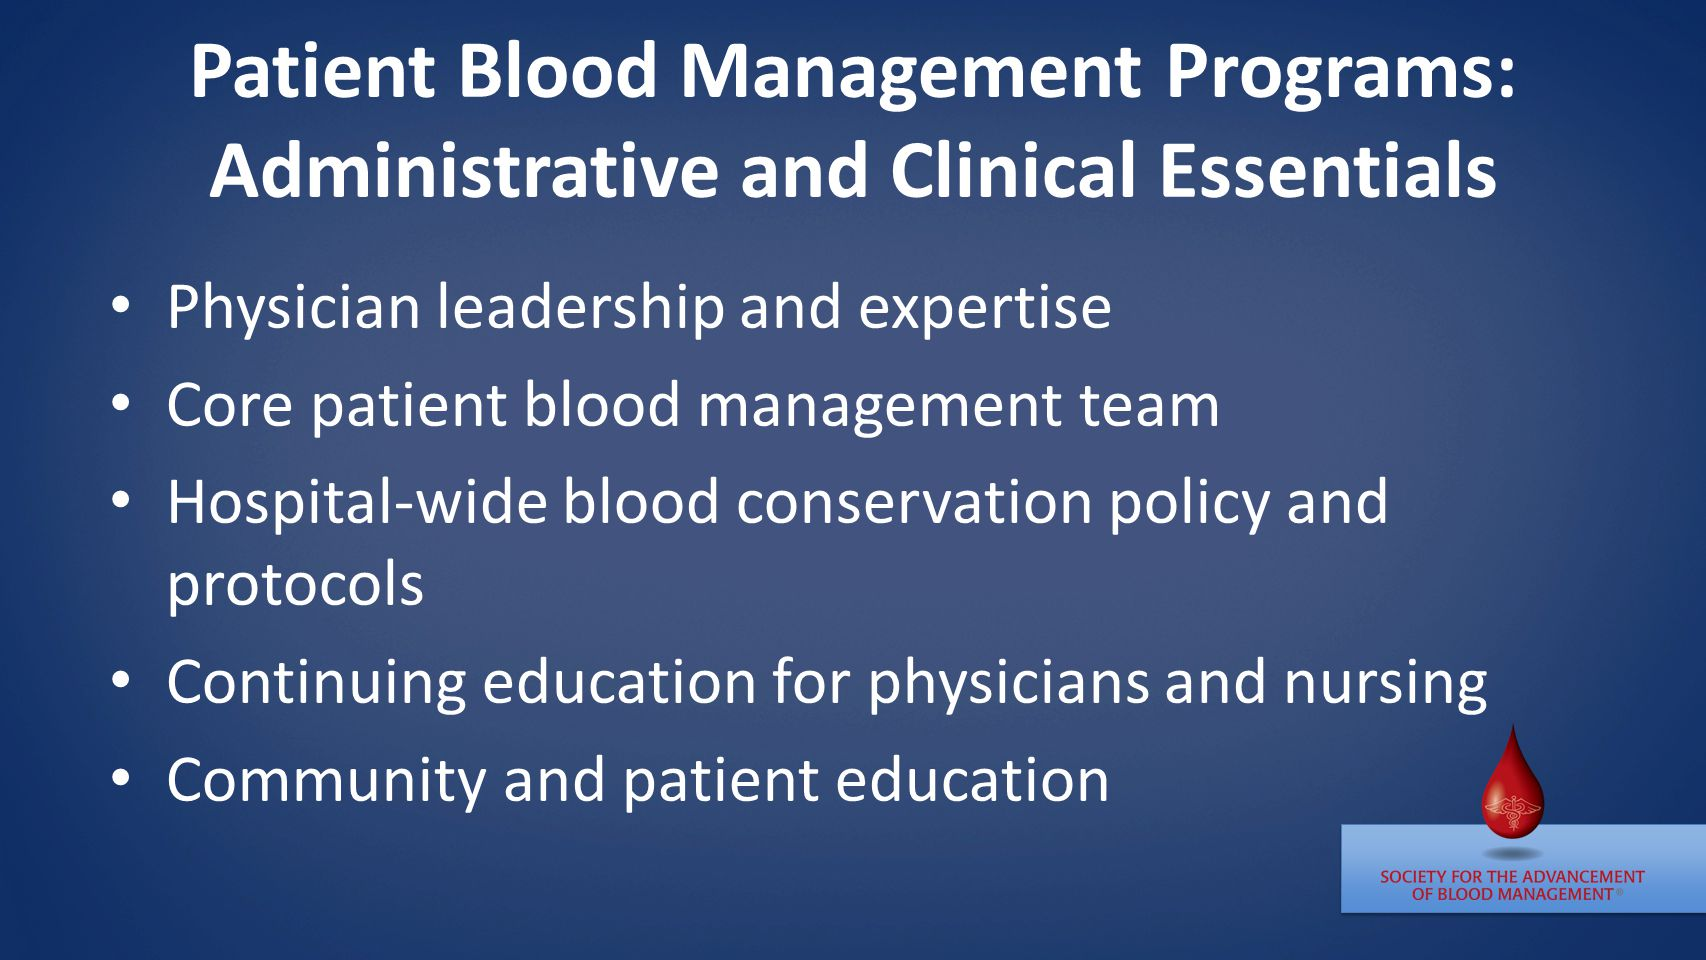 Patient Blood Management Programs: Administrative and Clinical Essentials Physician leadership and expertise Core patient blood management team Hospital-wide blood conservation policy and protocols Continuing education for physicians and nursing Community and patient education